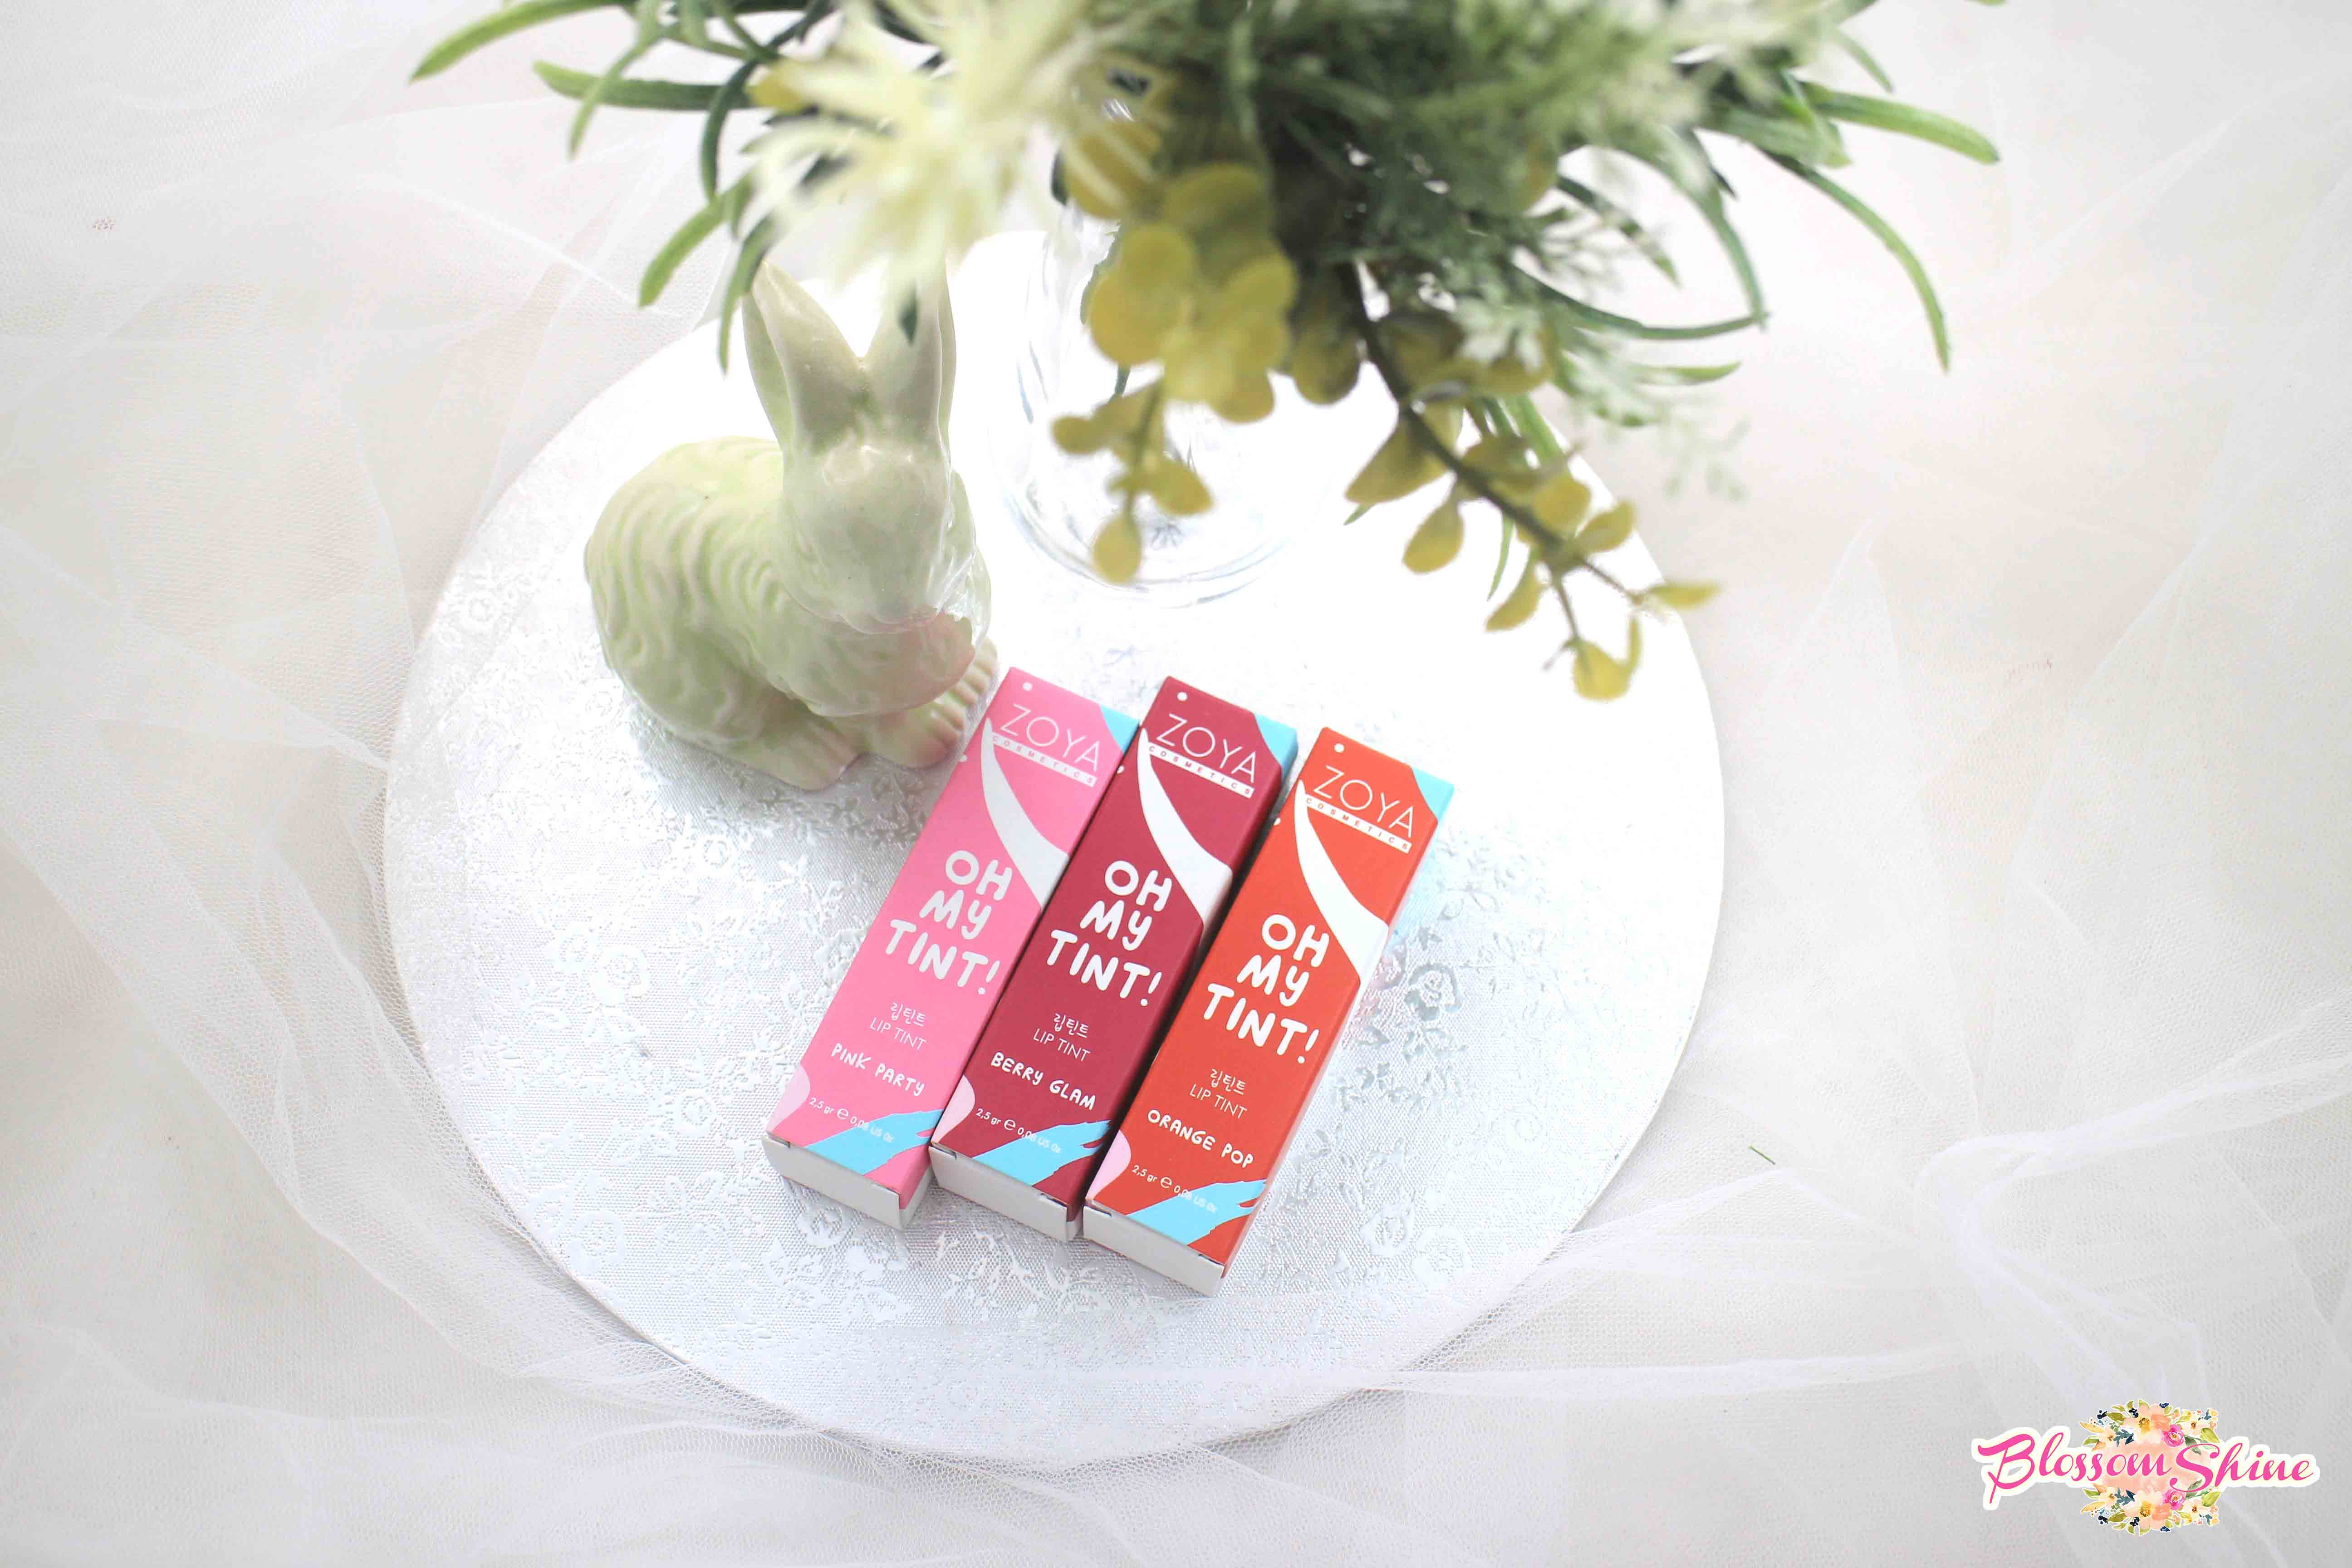 Review Oh! My Tint – Liptint Zoya Cosmetic